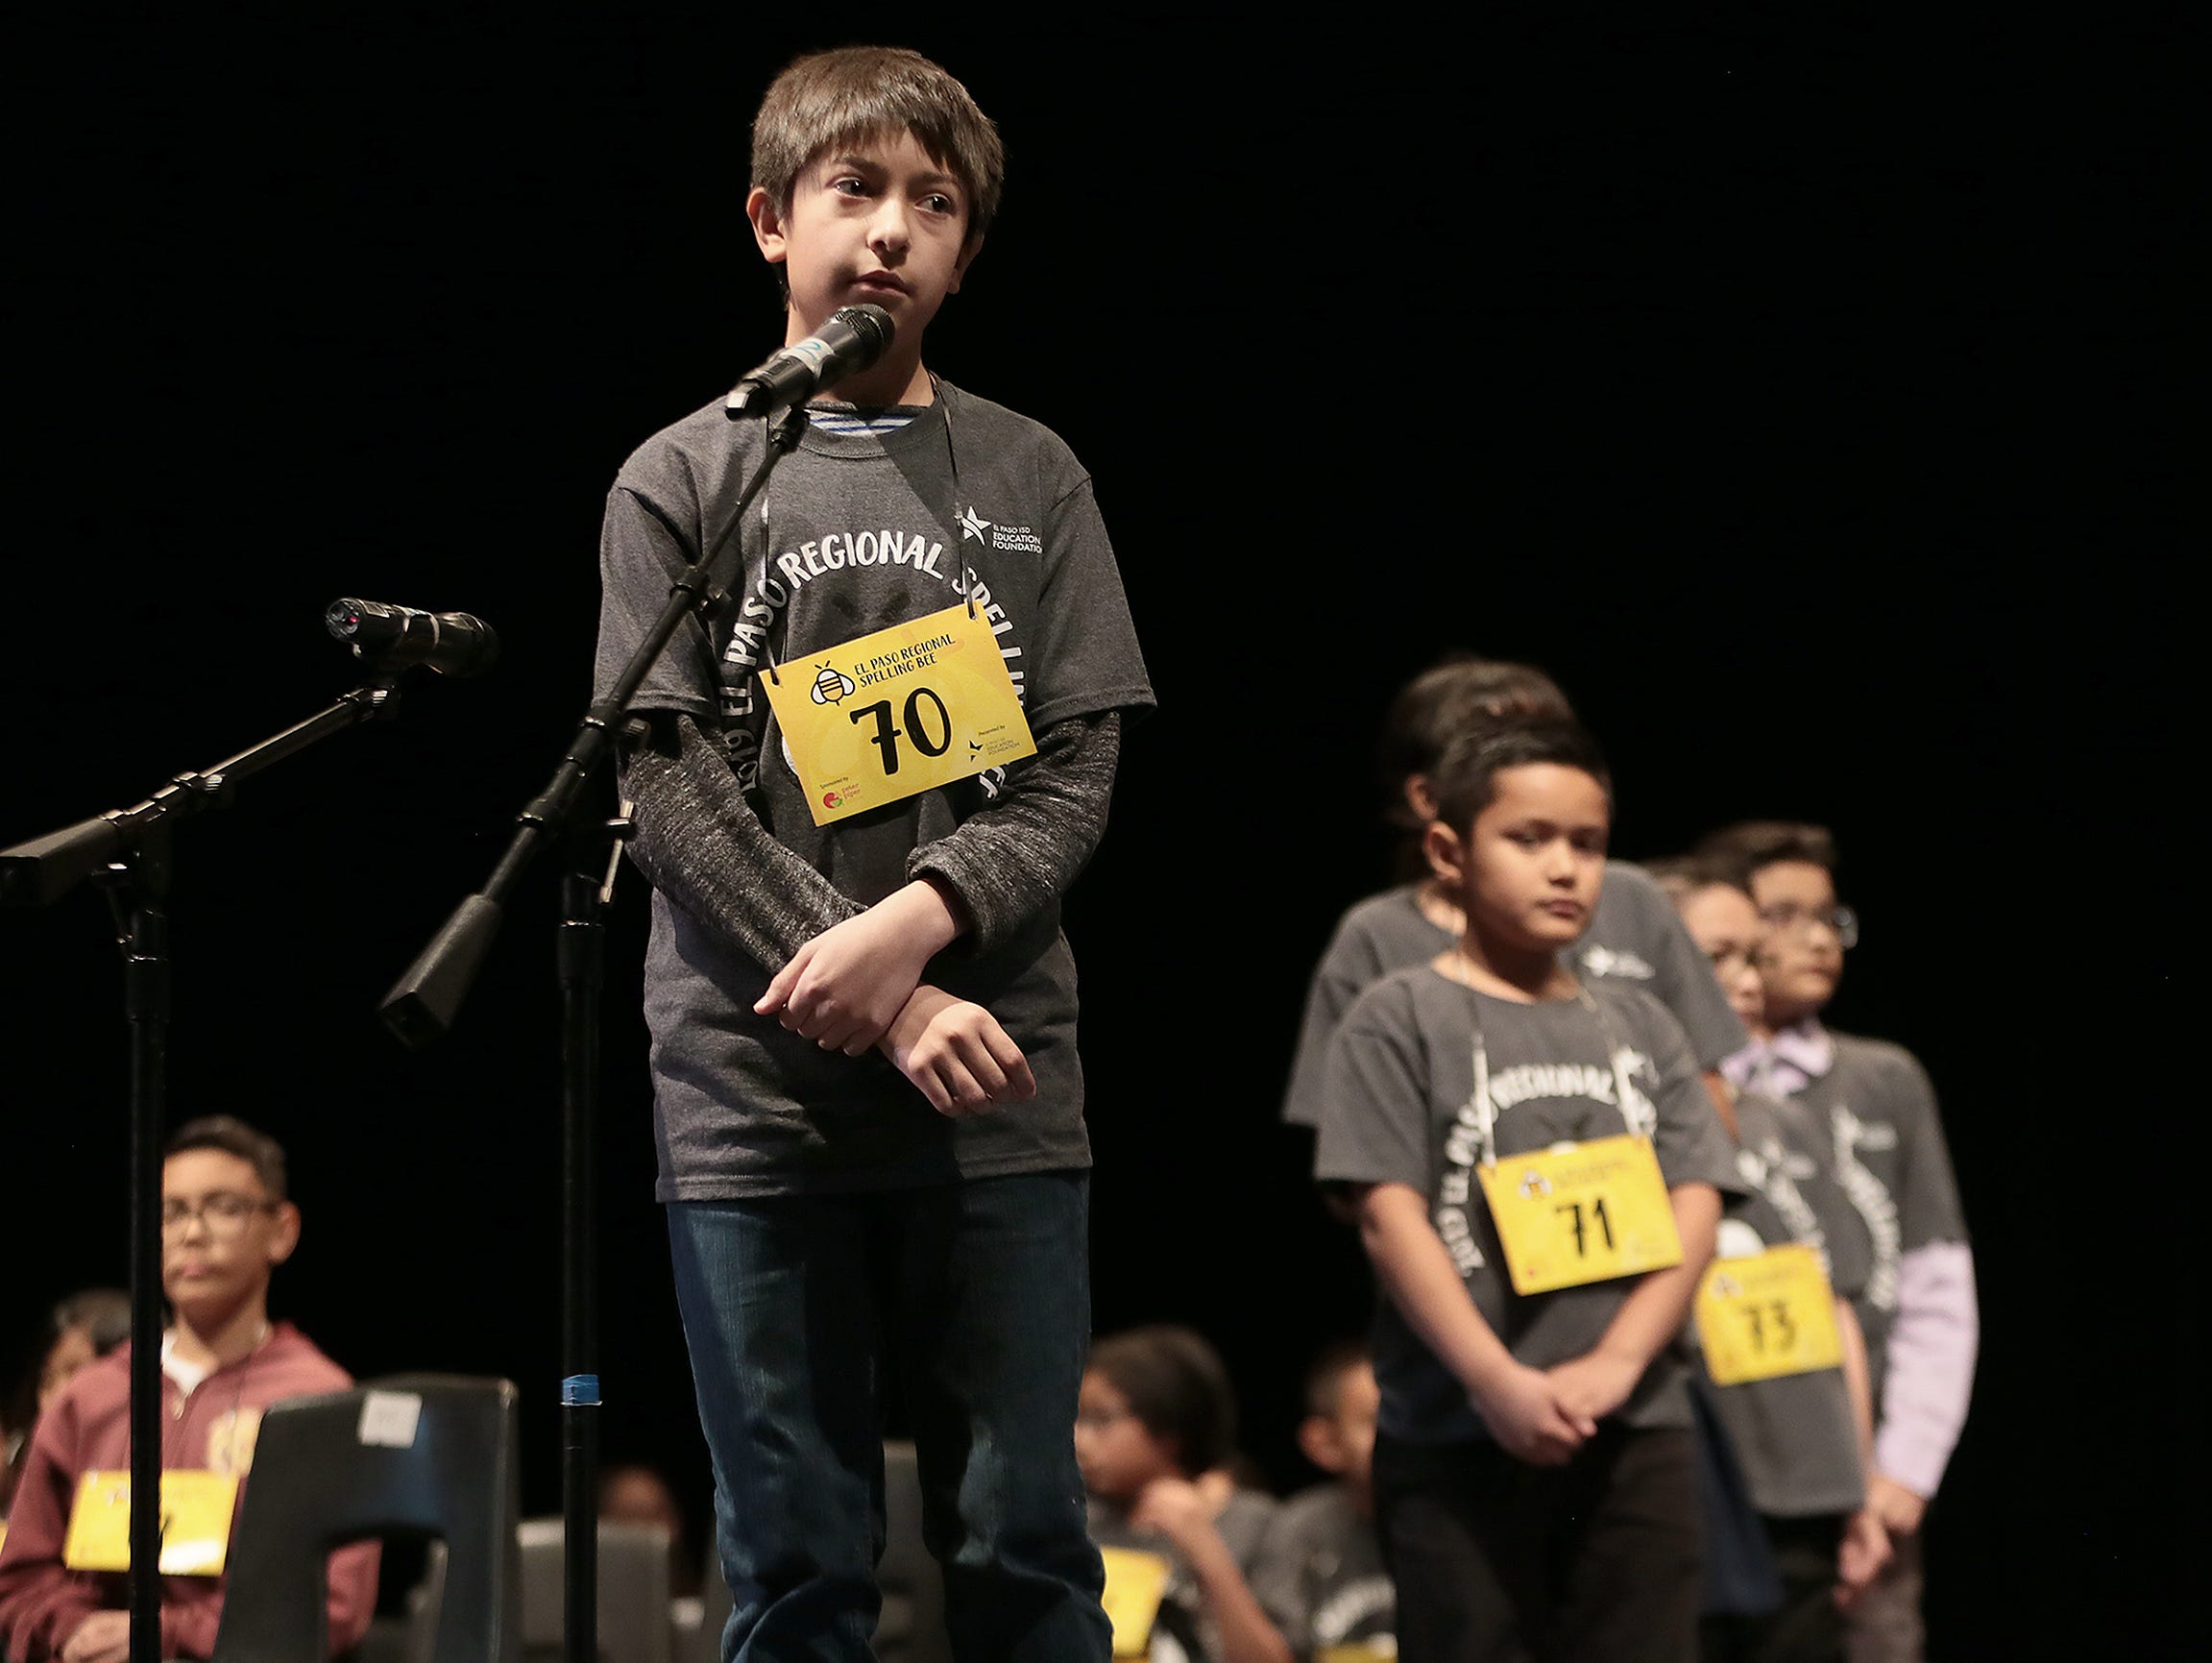 Ian Austin, of Edgemere Elementary School, listens for his word at the 2019 El Paso Regional Spelling Bee on Friday, March 1, 2019, at Bowie High School. He took third place Saturday.